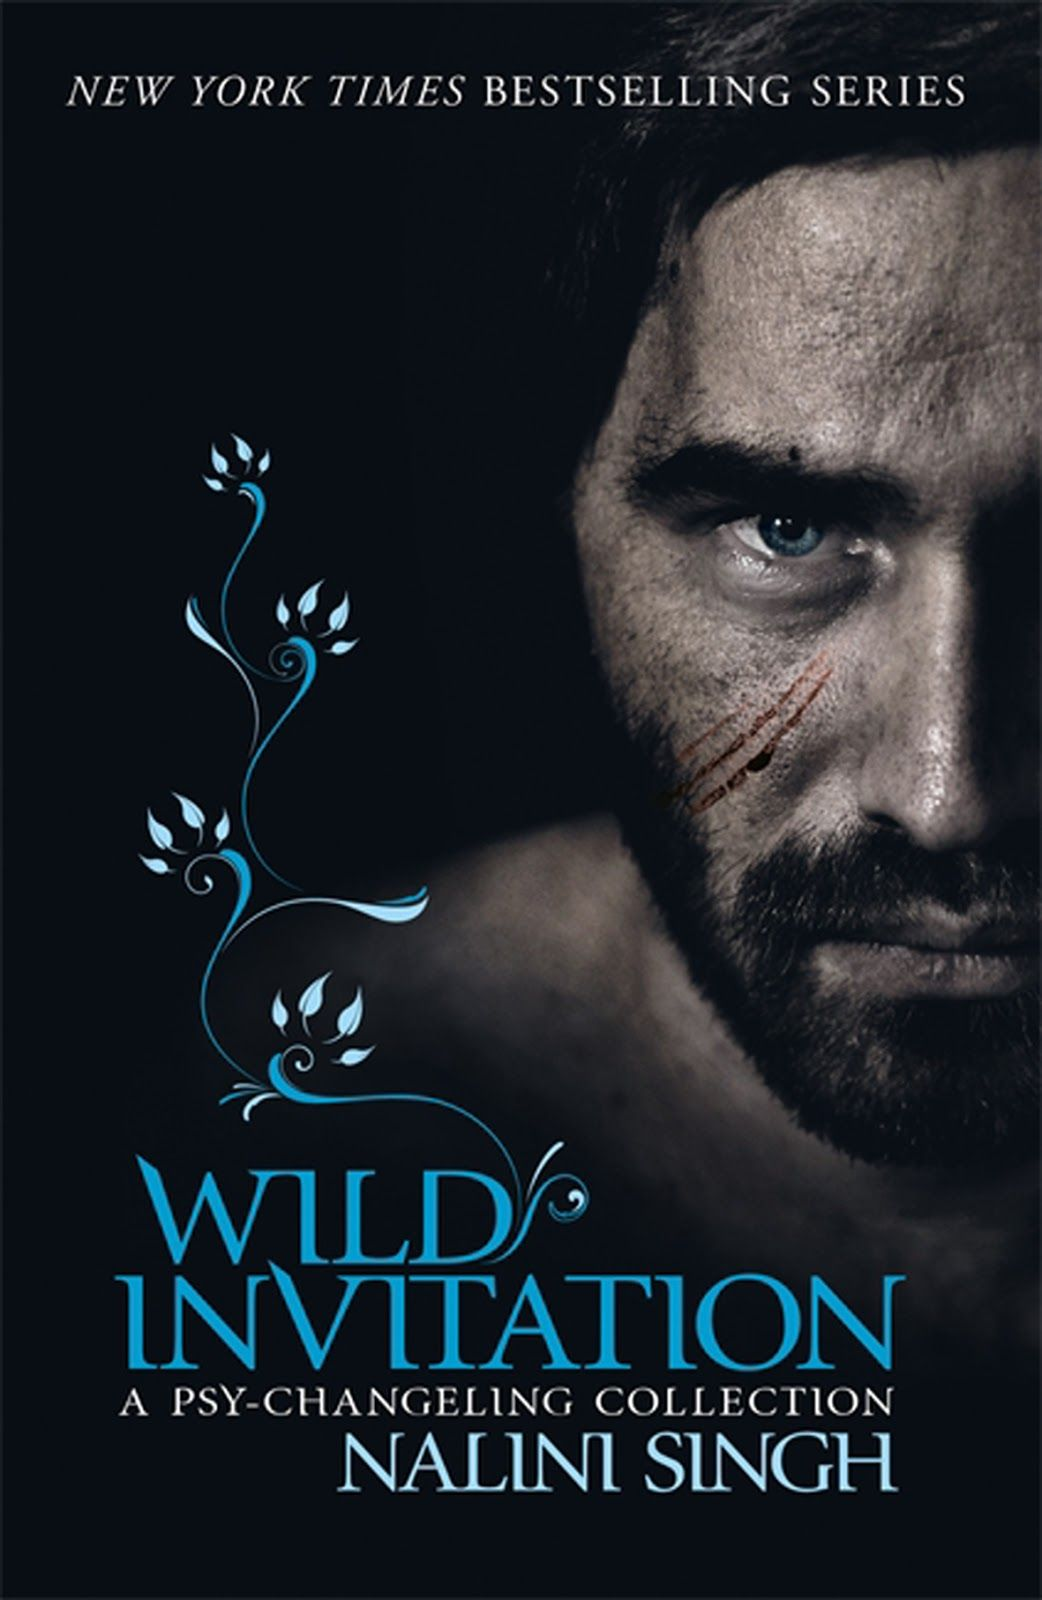 UK cover of Wild Invitation, this is a collection of short stories set in the psy-changeling series